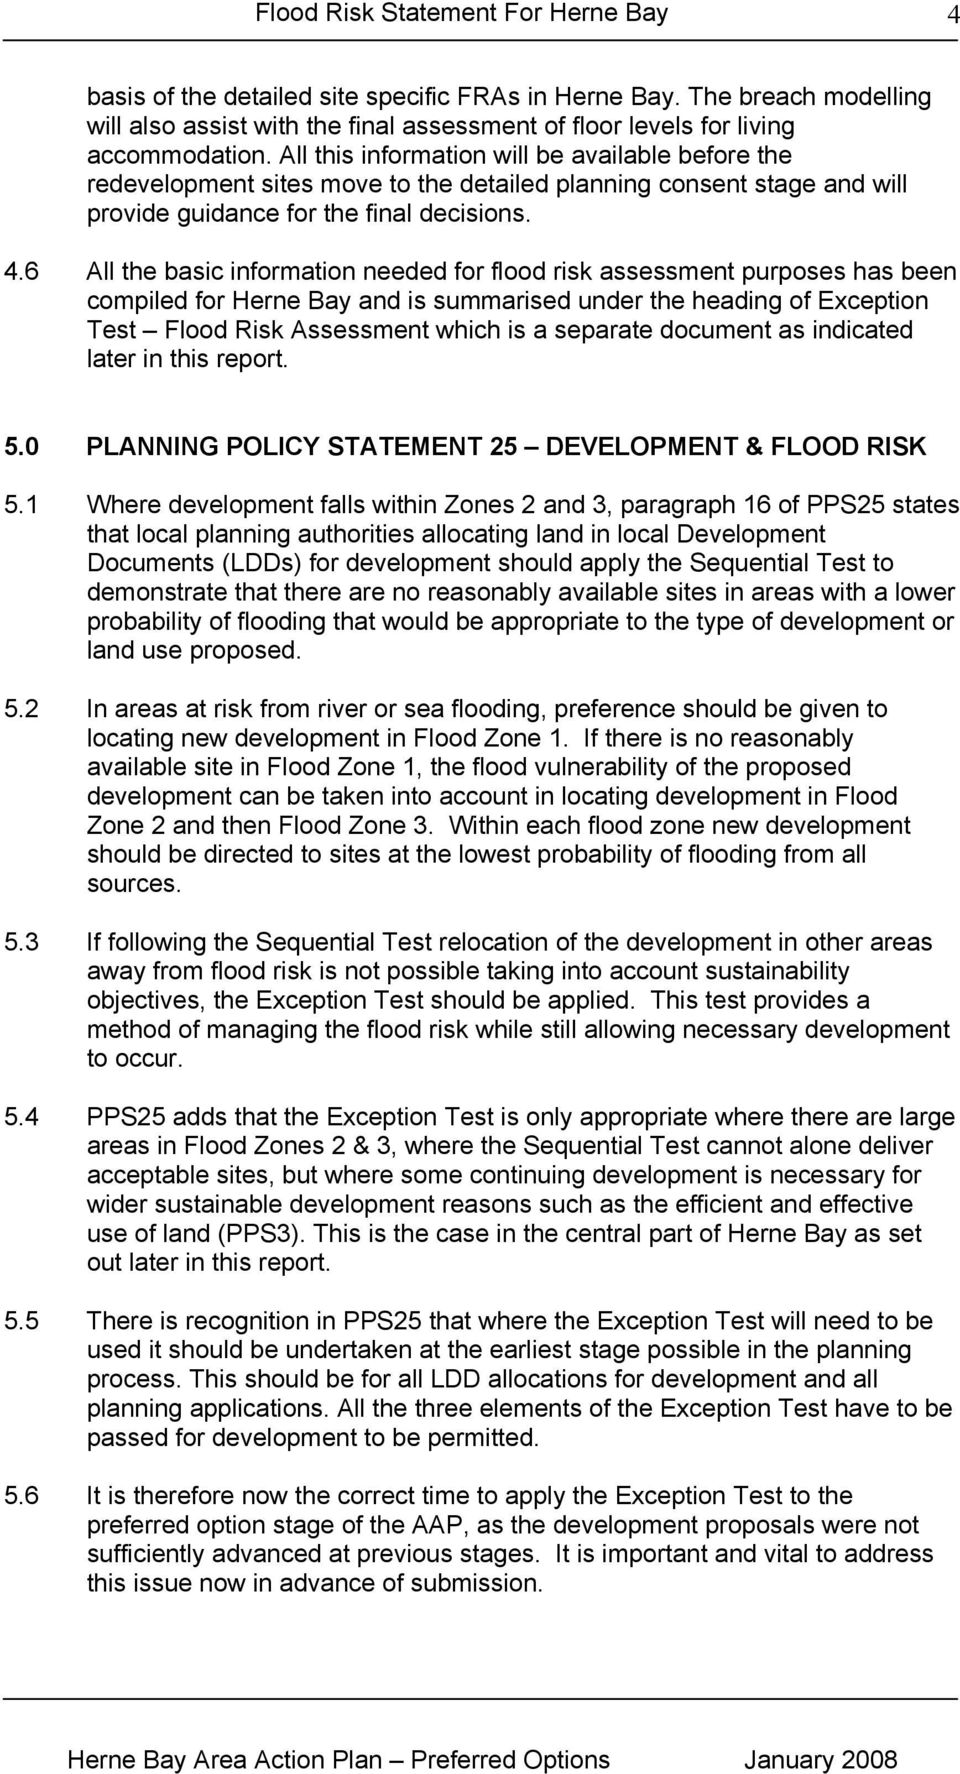 6 All the basic information needed for flood risk assessment purposes has been compiled for Herne Bay and is summarised under the heading of Exception Test Flood Risk Assessment which is a separate